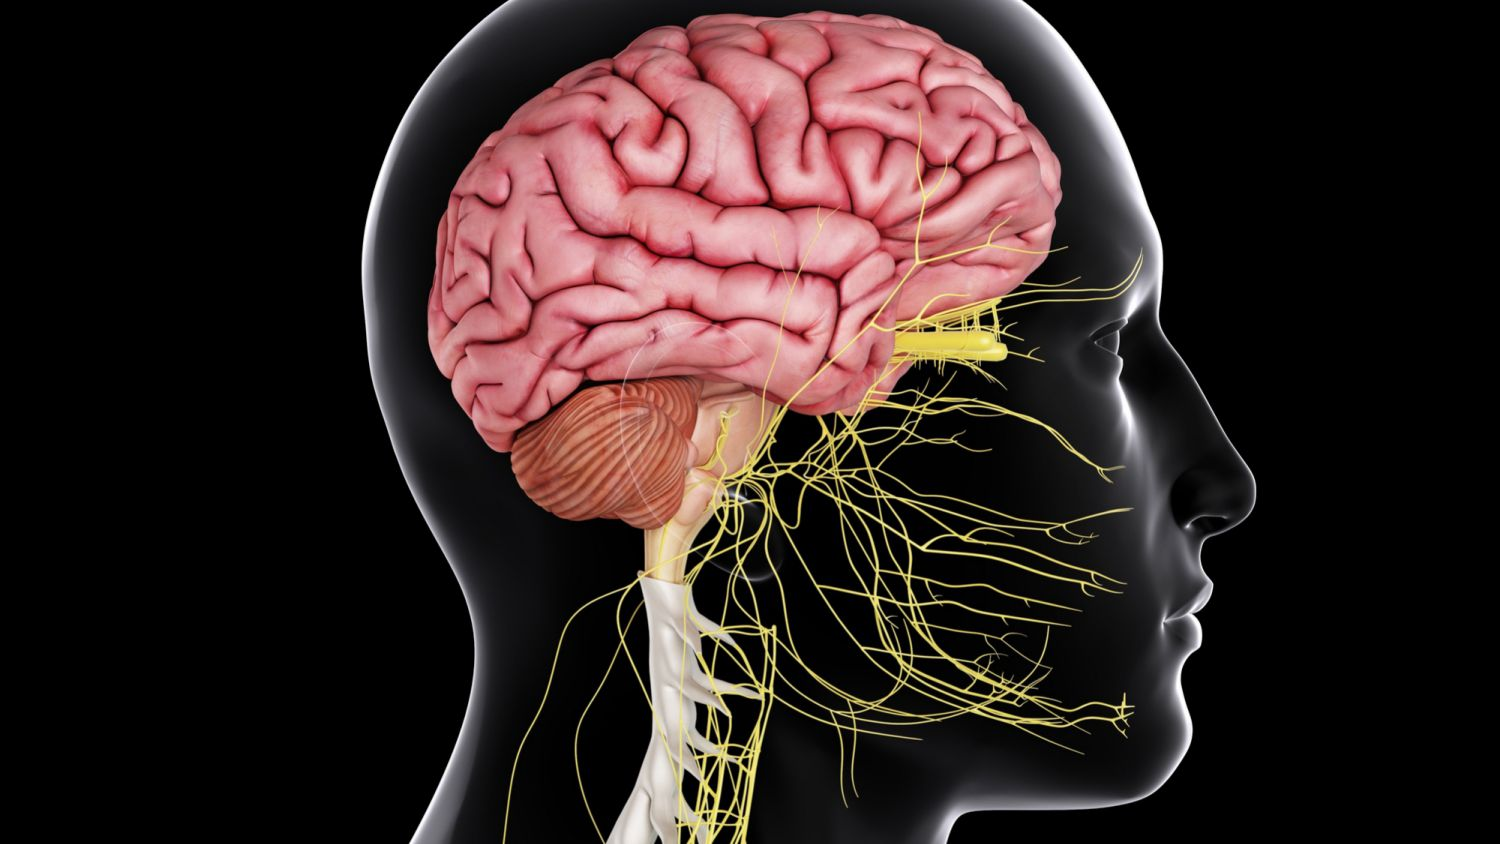 The Central Nervous System in Your Body